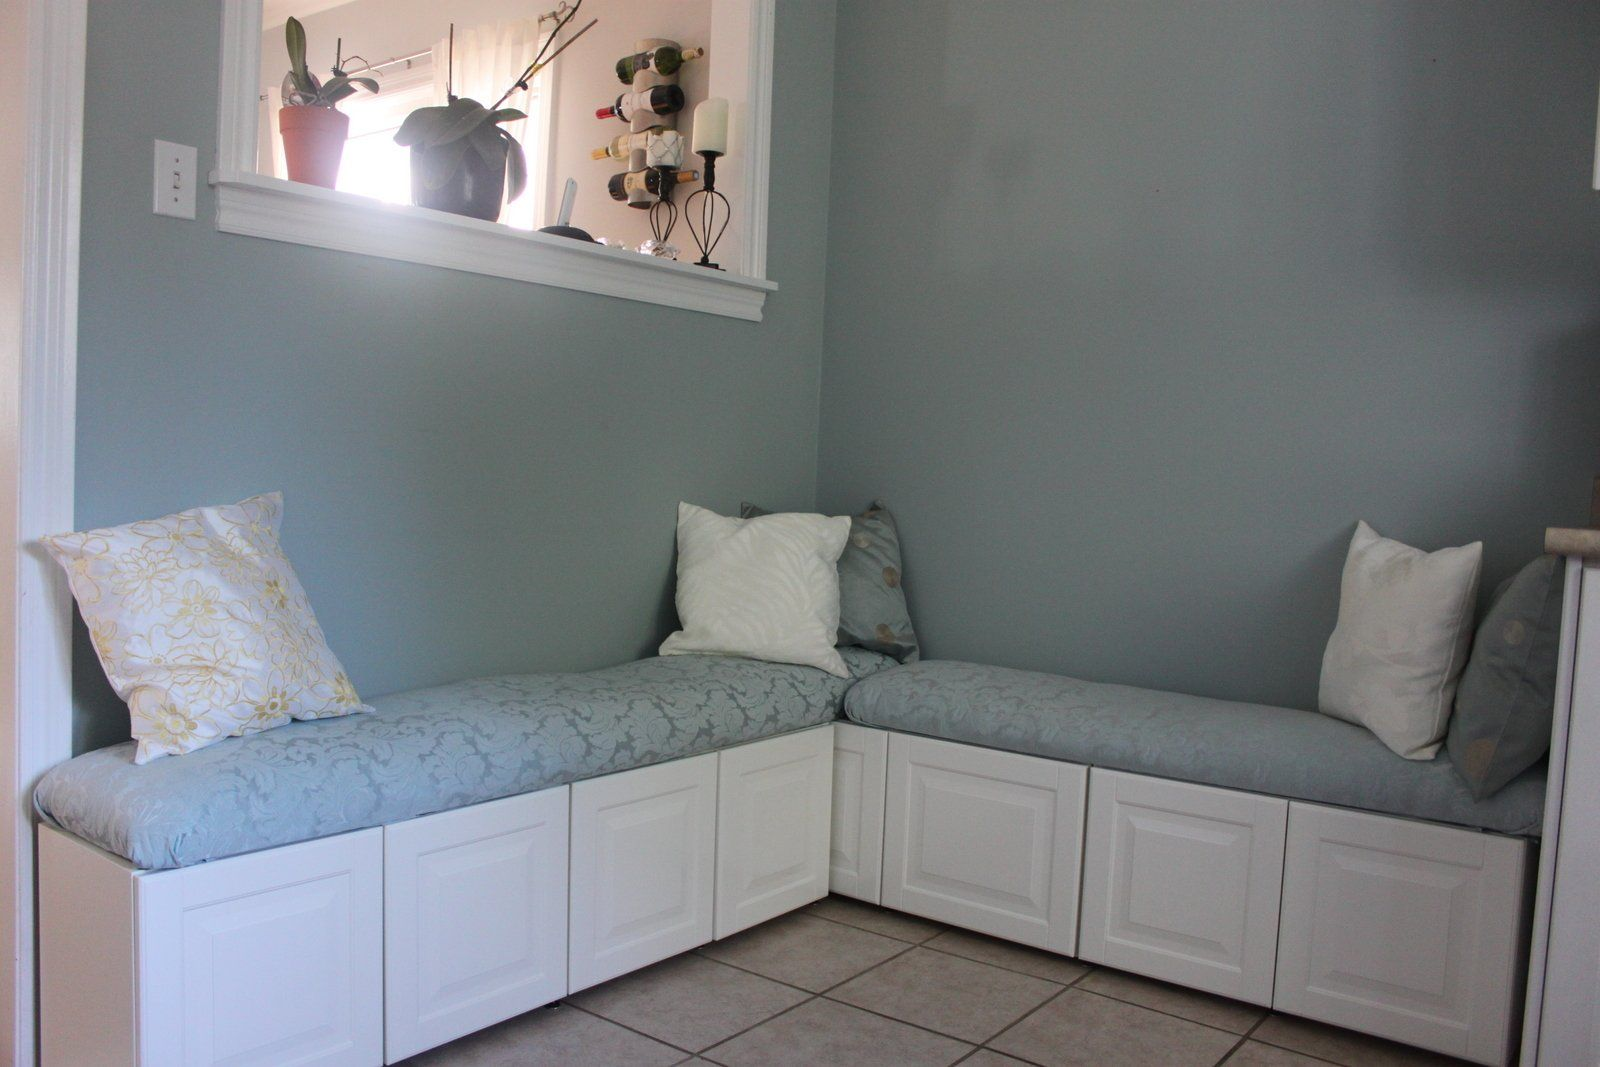 Diy Ikea Hack Banquette From Lidingo Cabinets Home